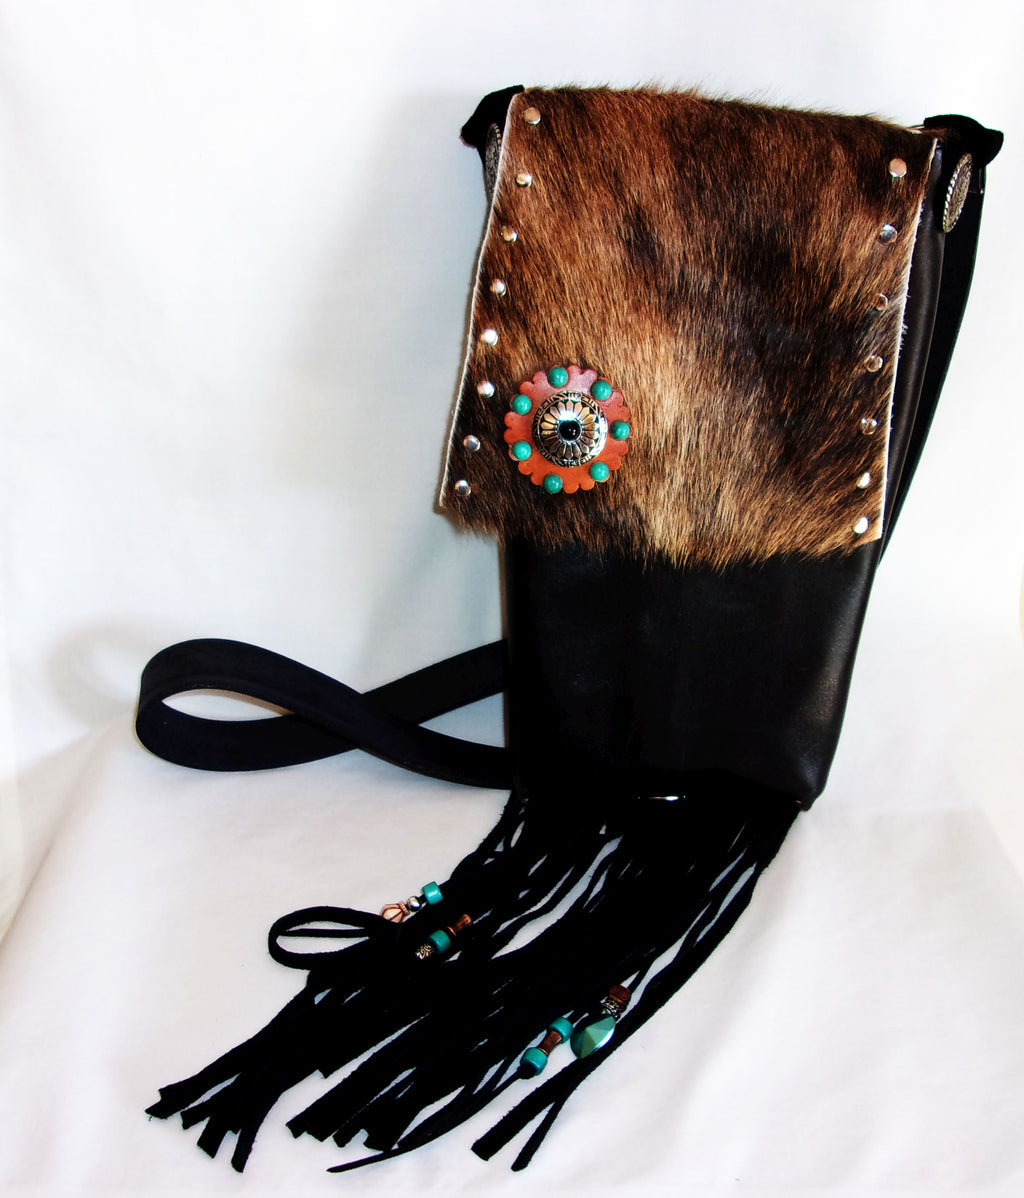 Hair on Hide Bag - Cowboy Boot Purse - Cowhide Purse - Handcrafted Crossbody Purse HH40